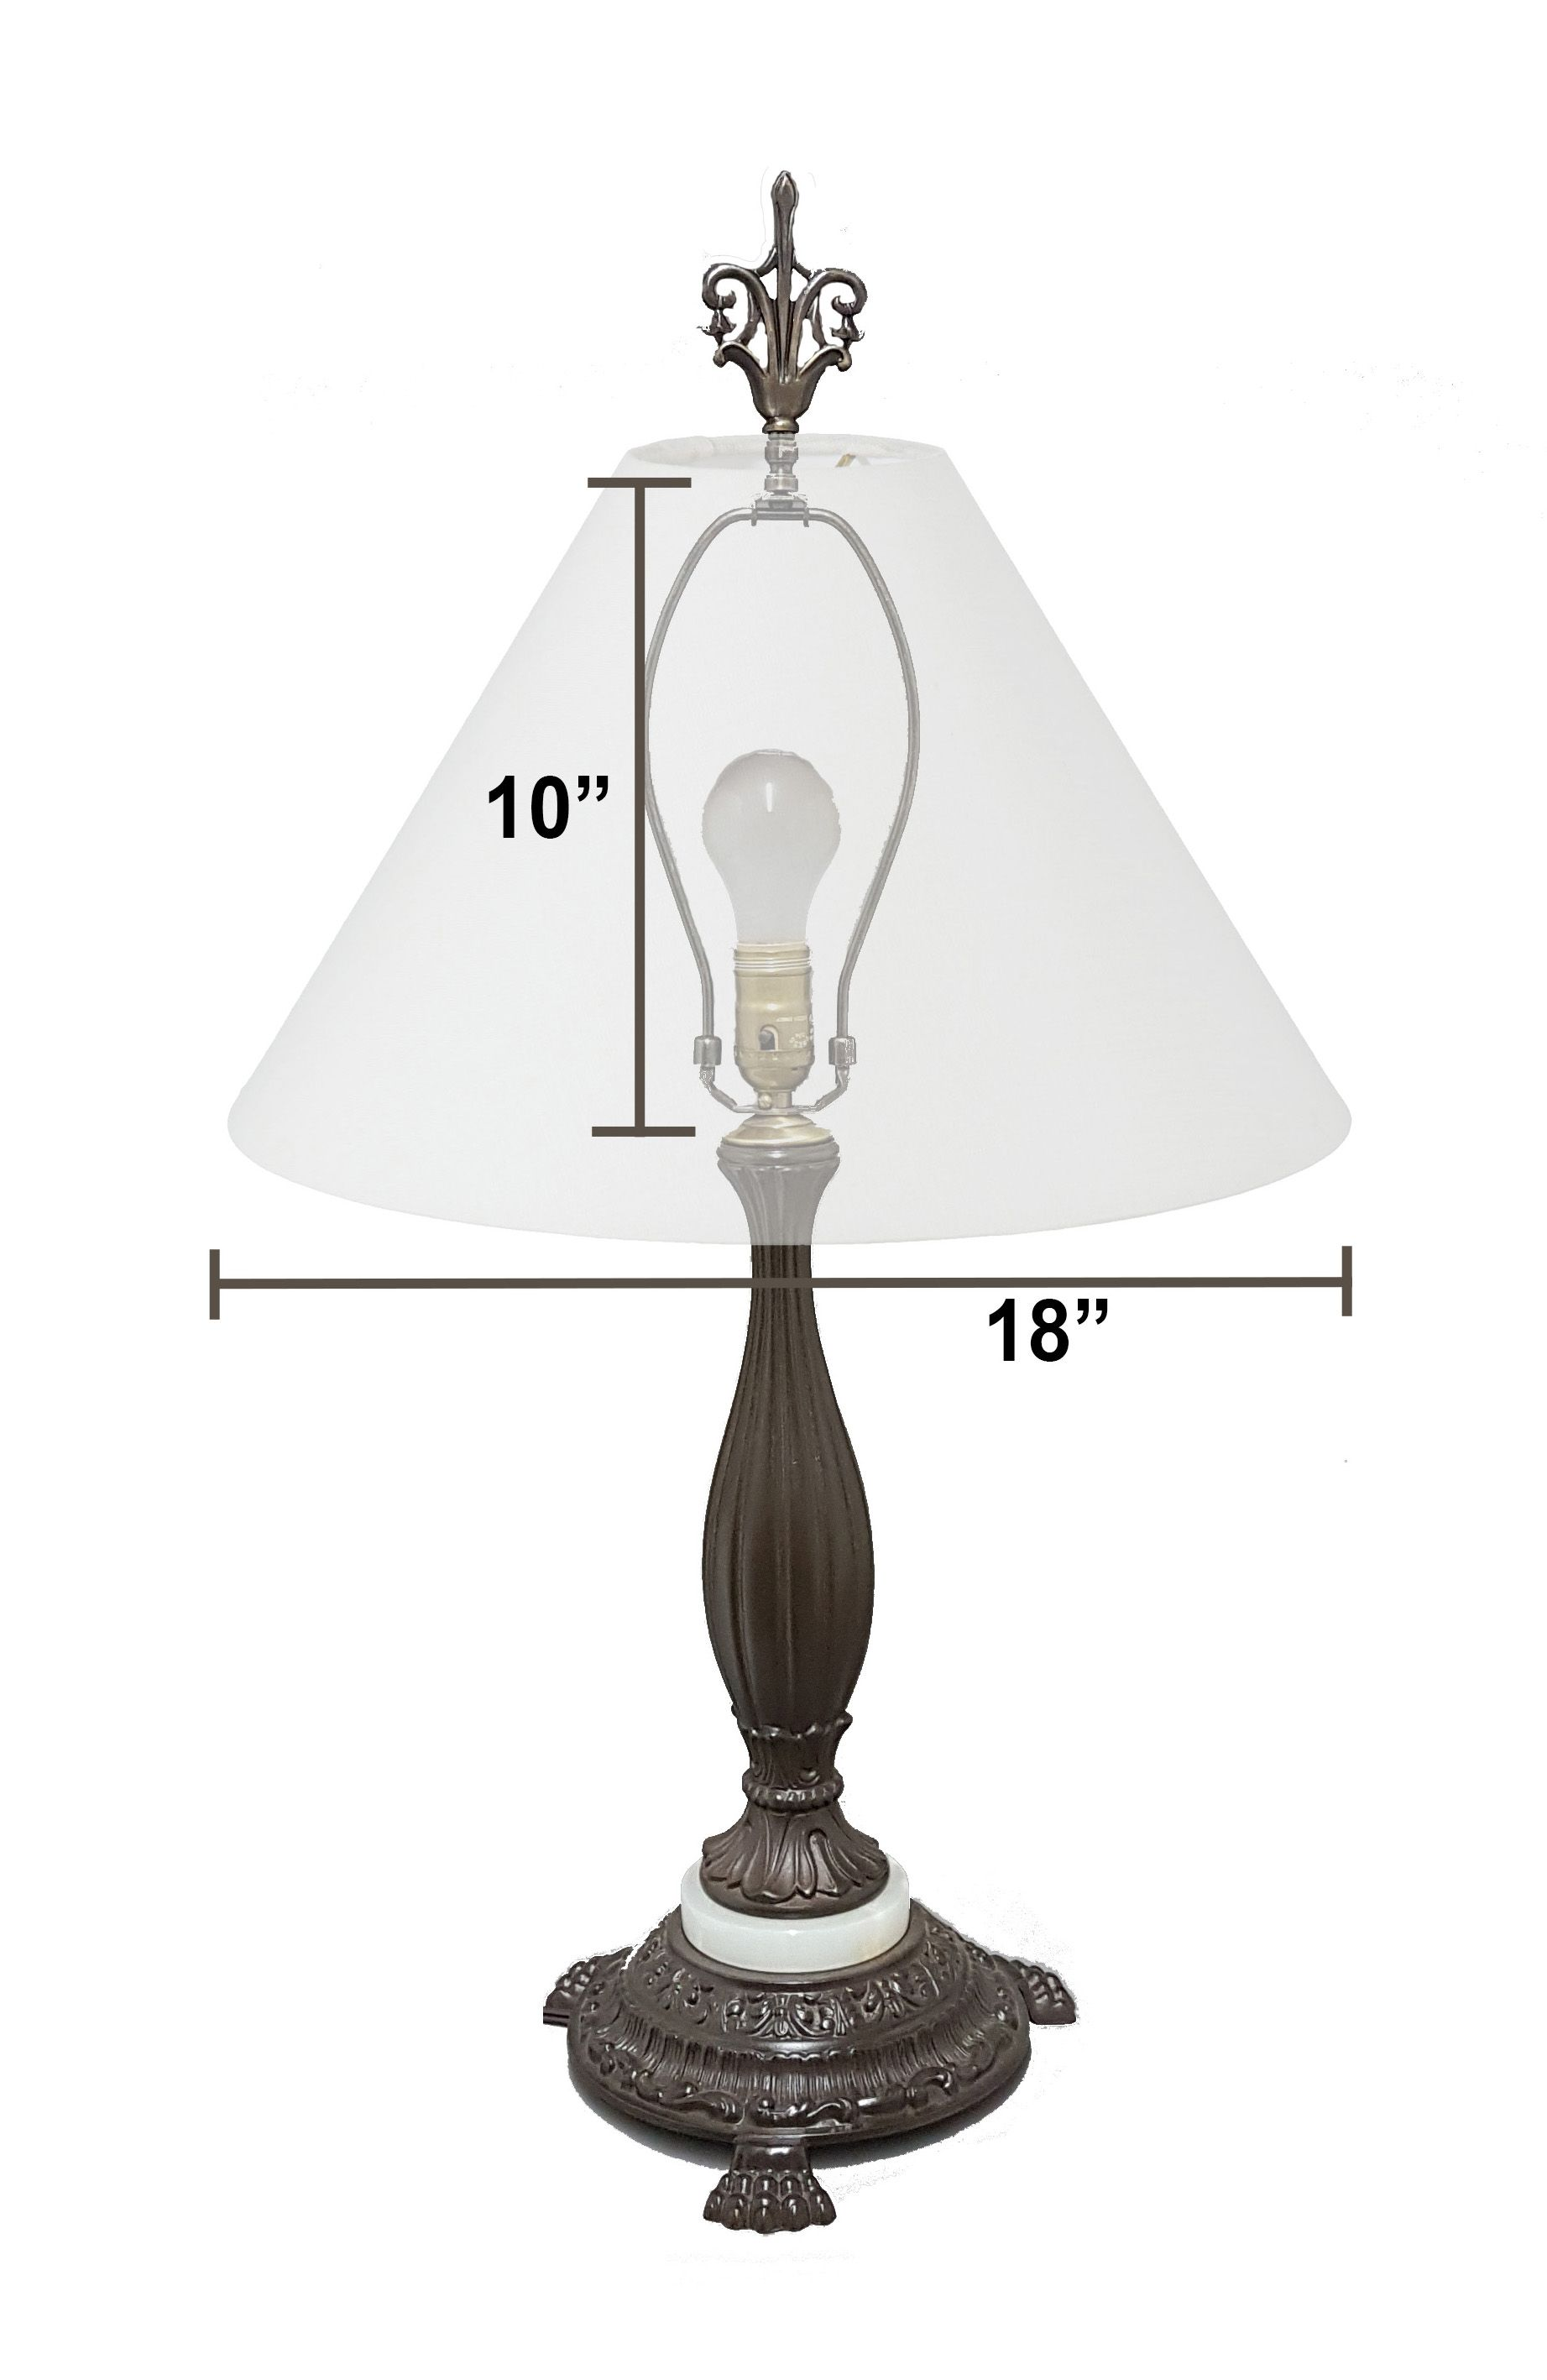 how to measure a lampshade for a floor lamp